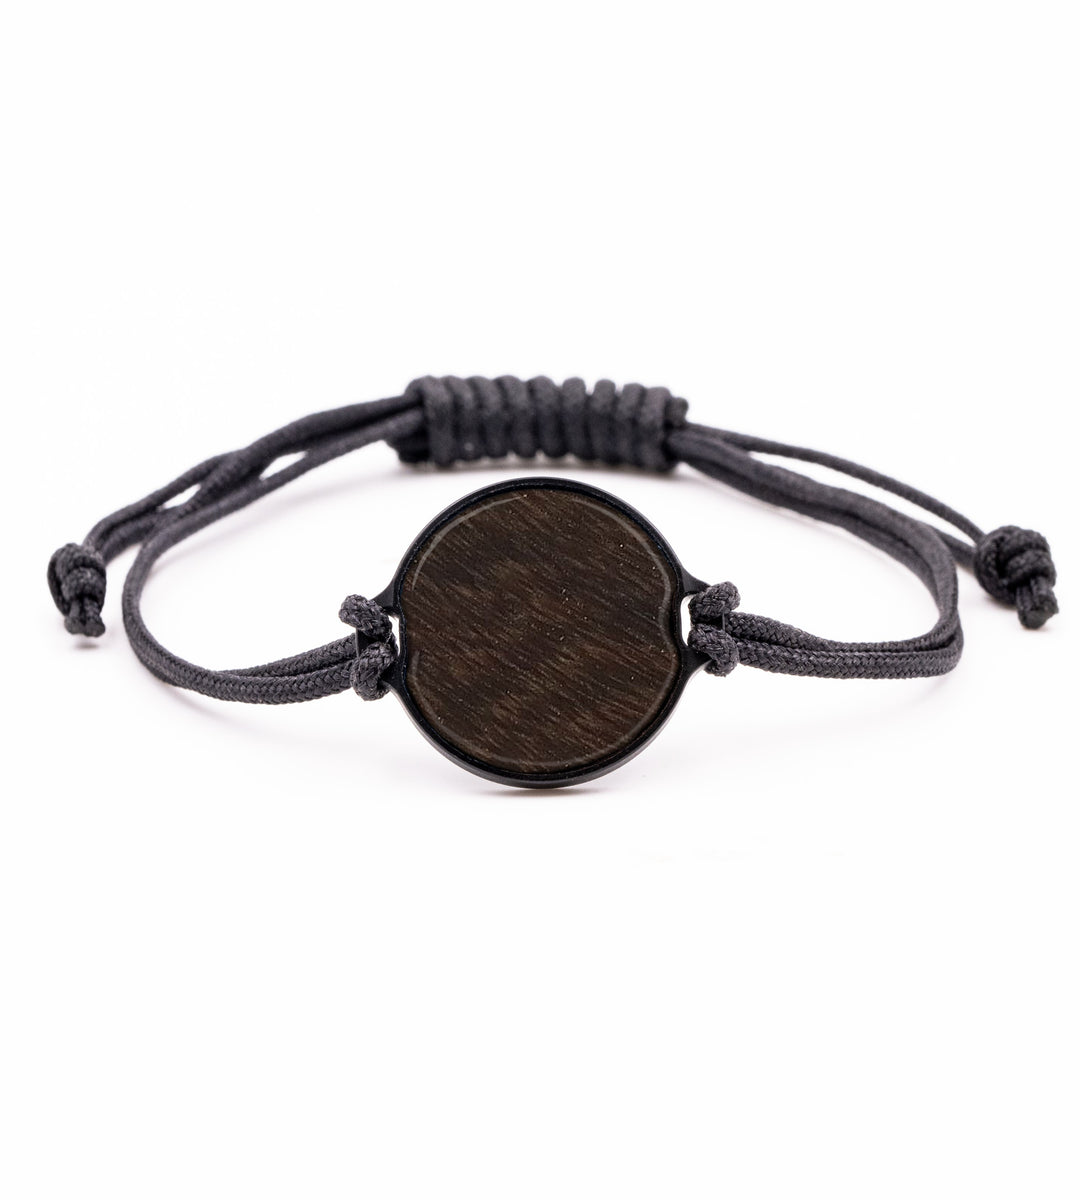 Circle Burl Wood Bracelet - Sabina (Walnut Burl, 423118)